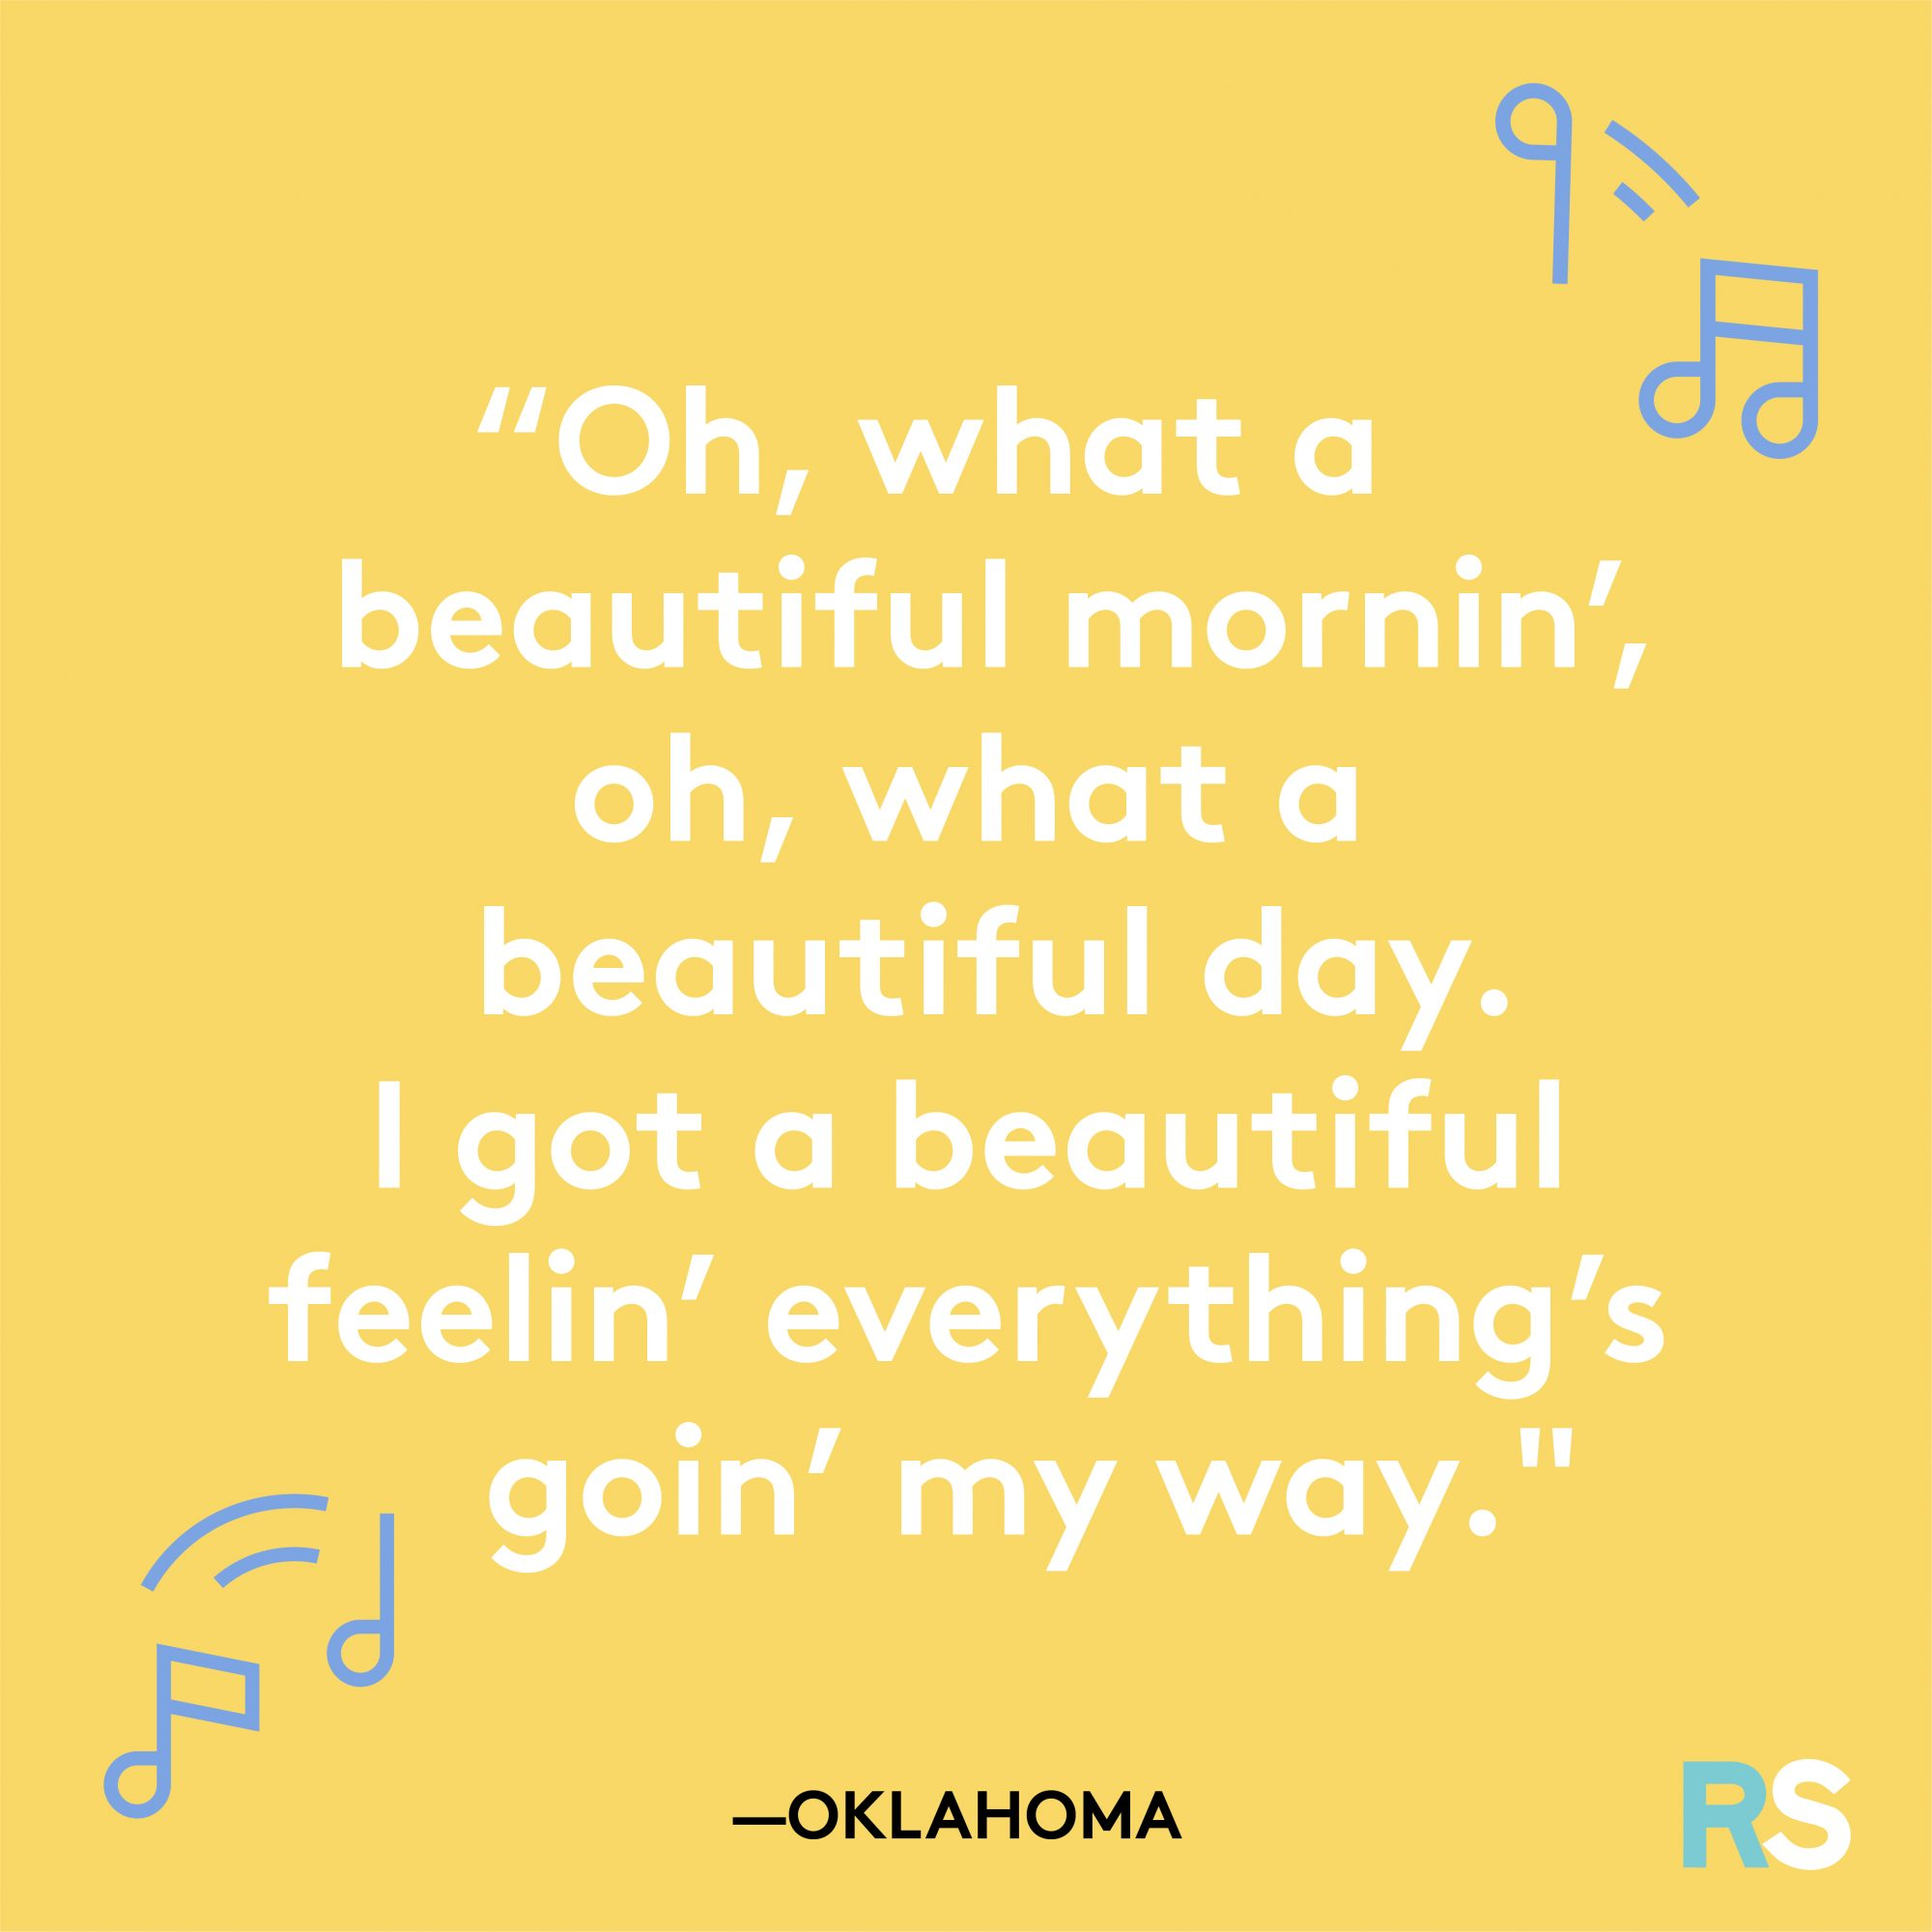 Oh What a Beautiful Mornin Lyric from Oklahoma